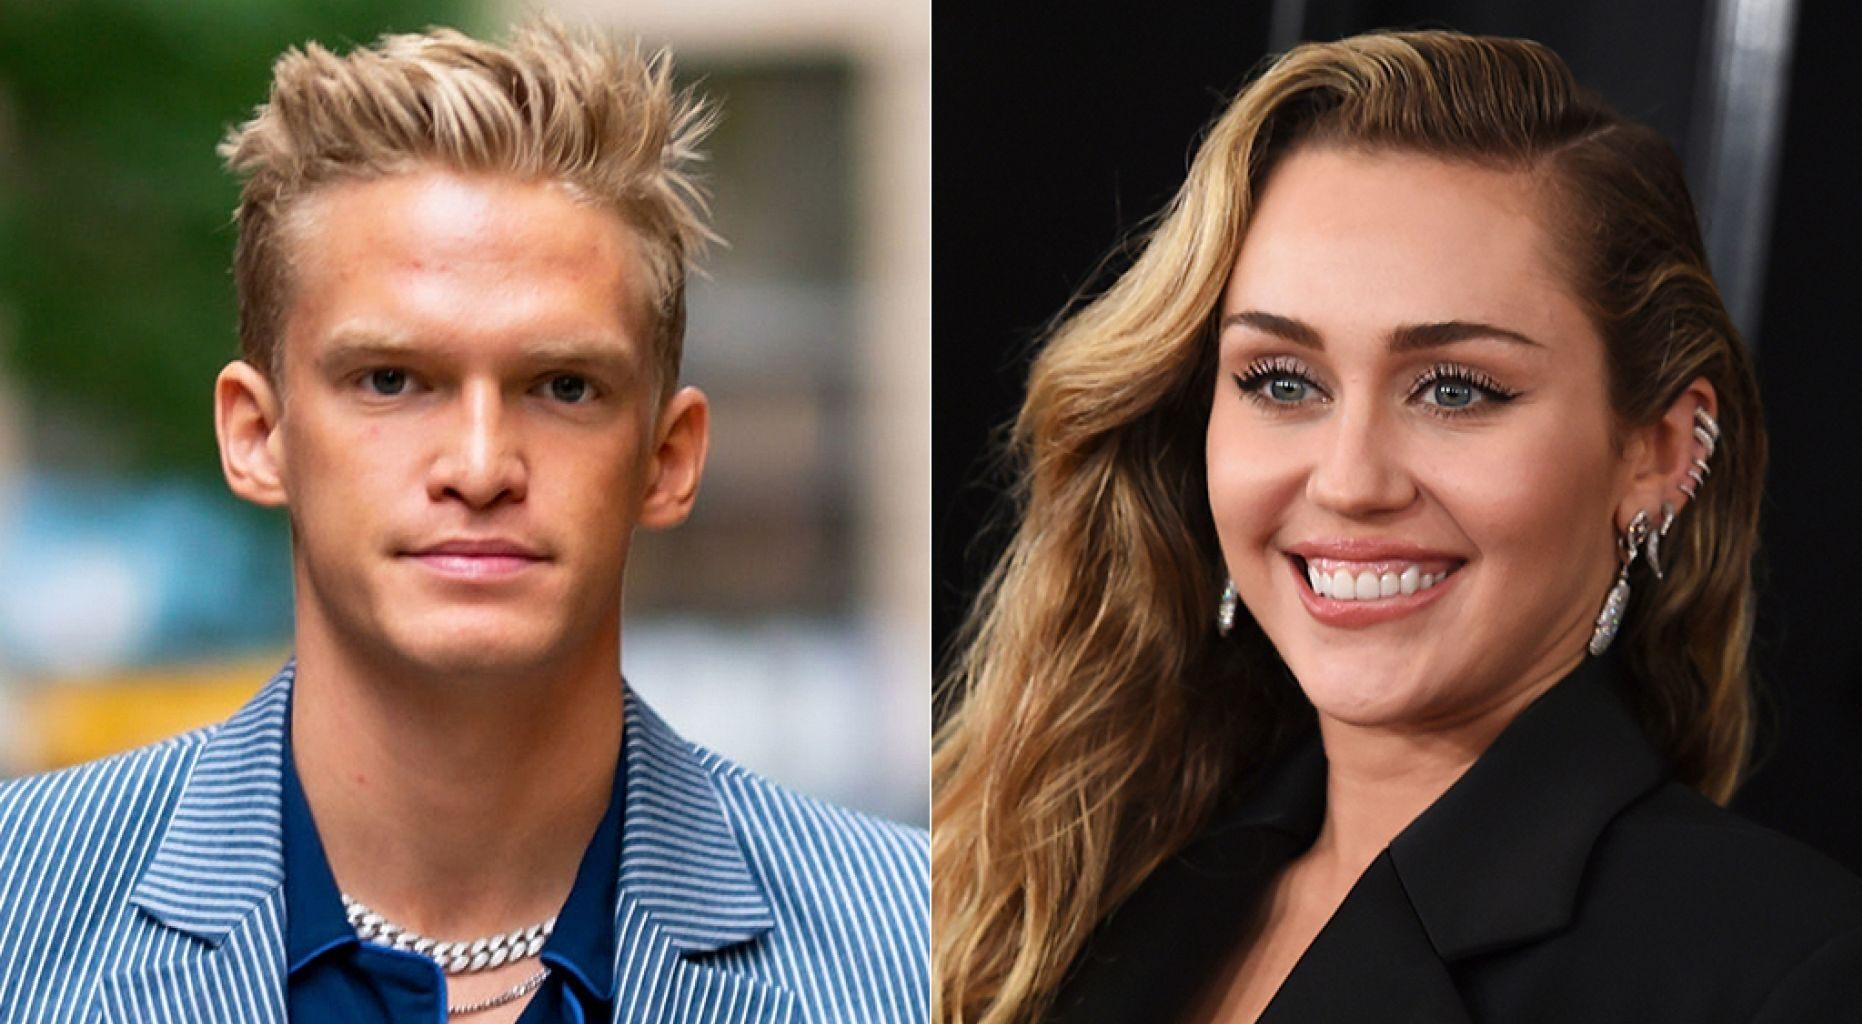 Cody Simpson Gushed Over His 'Celebrity Crush' Miley Cyrus Years Before Their New Romance!